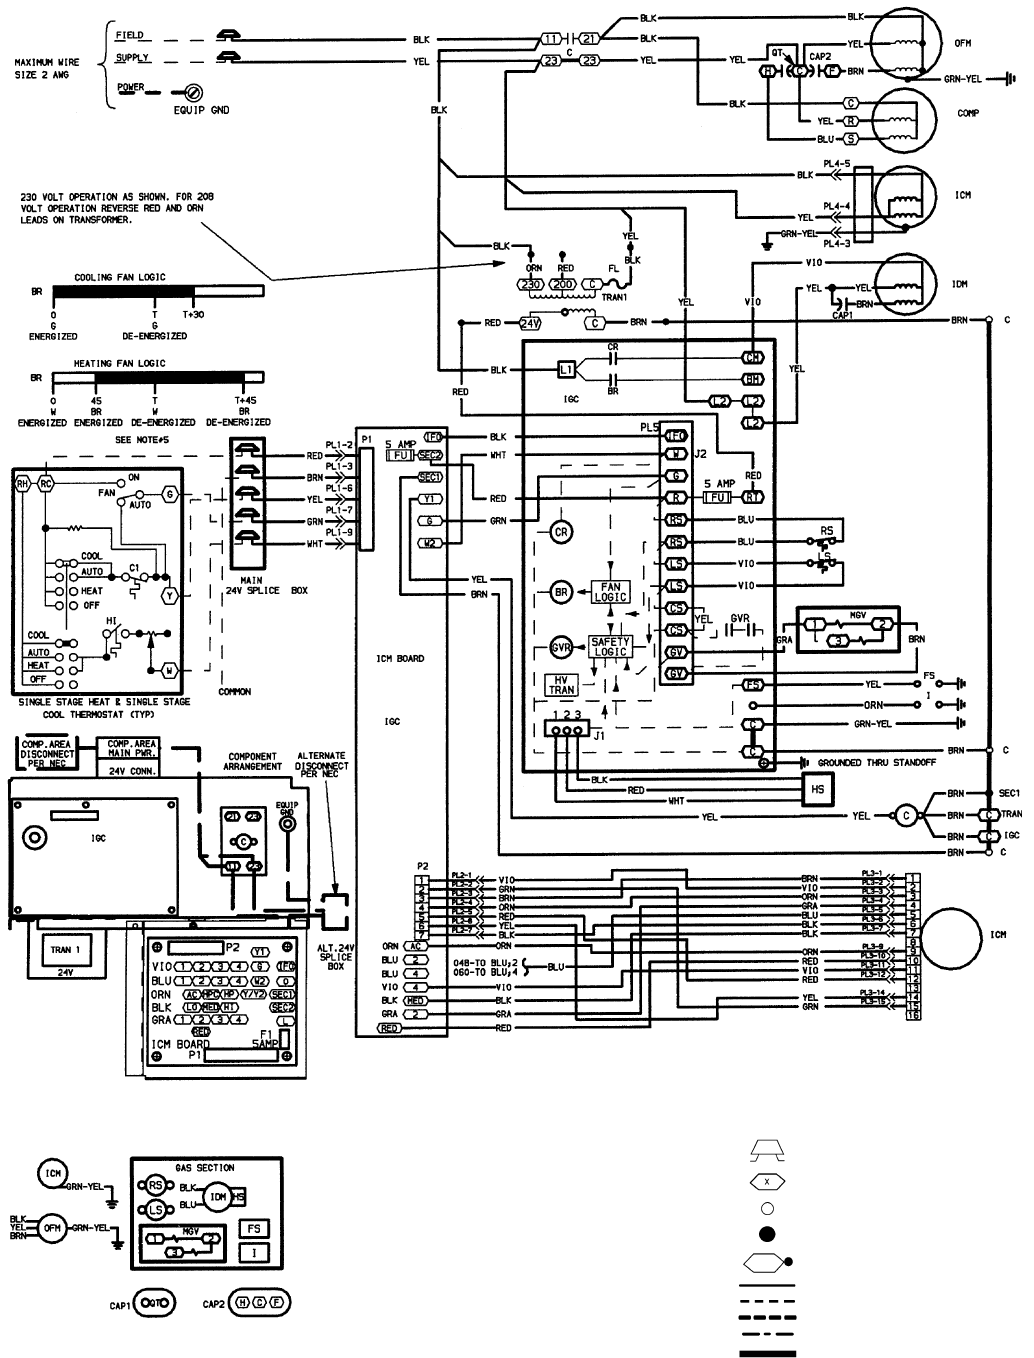 dayton motor wiring diagram 110 220  u2022 wiring and engine